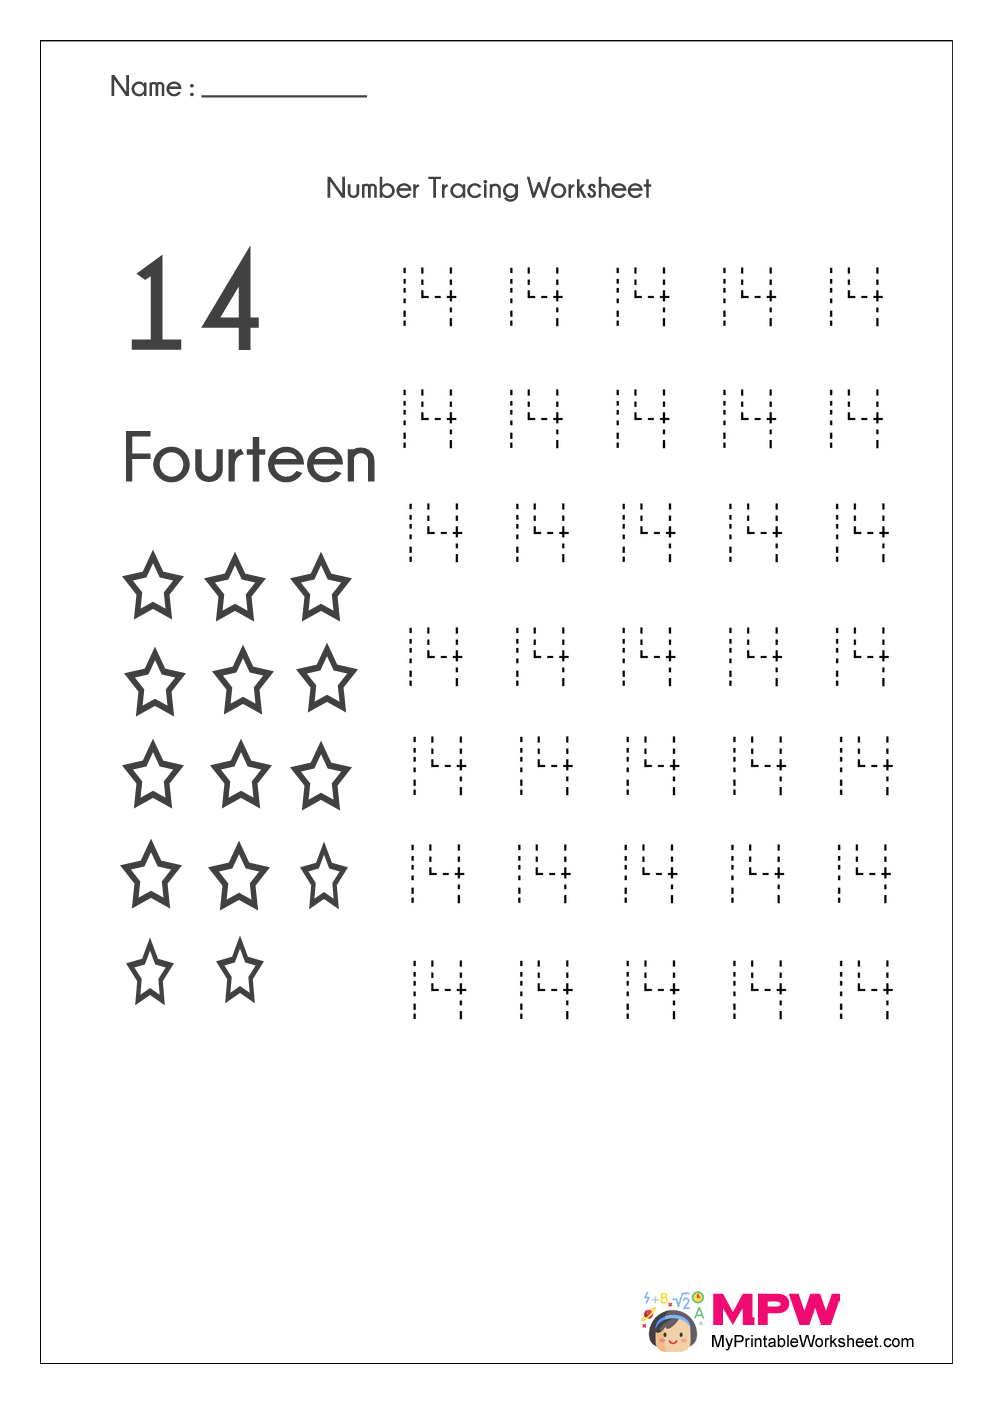 Number Tracing Worksheets 1-20, Dotted Line Number Tracing 1-10